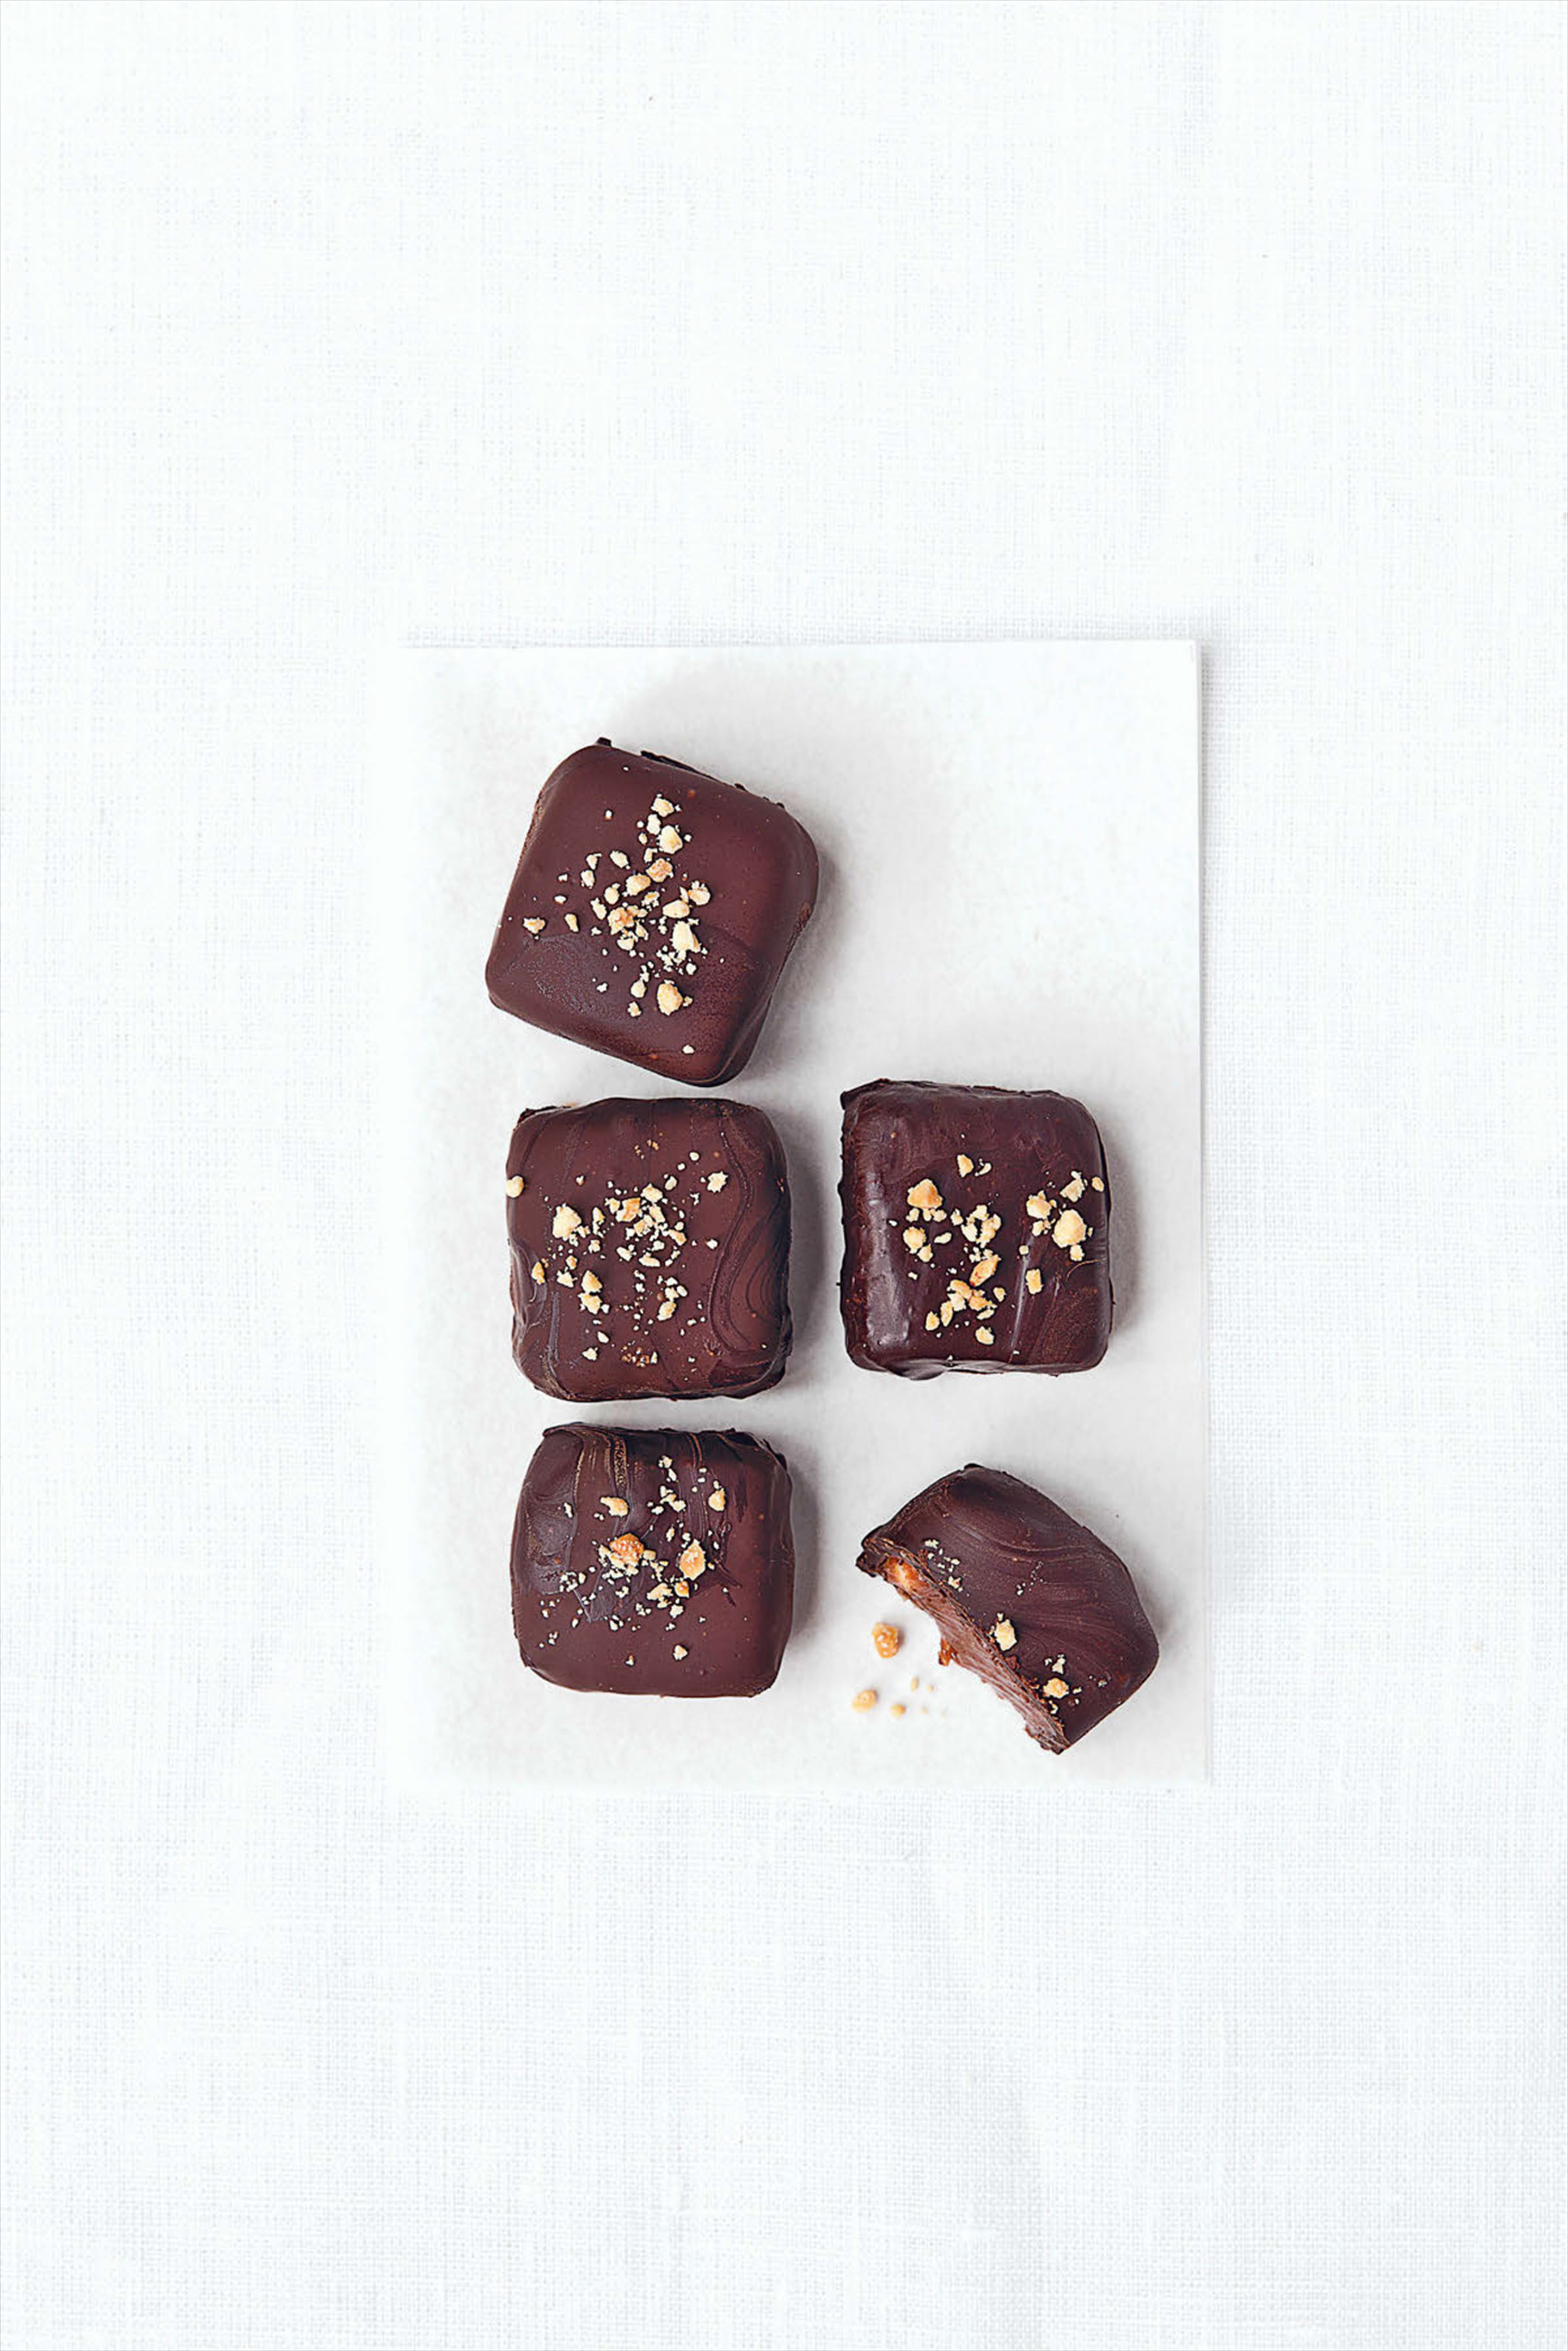 Chocolate and peanut ganache chocolates